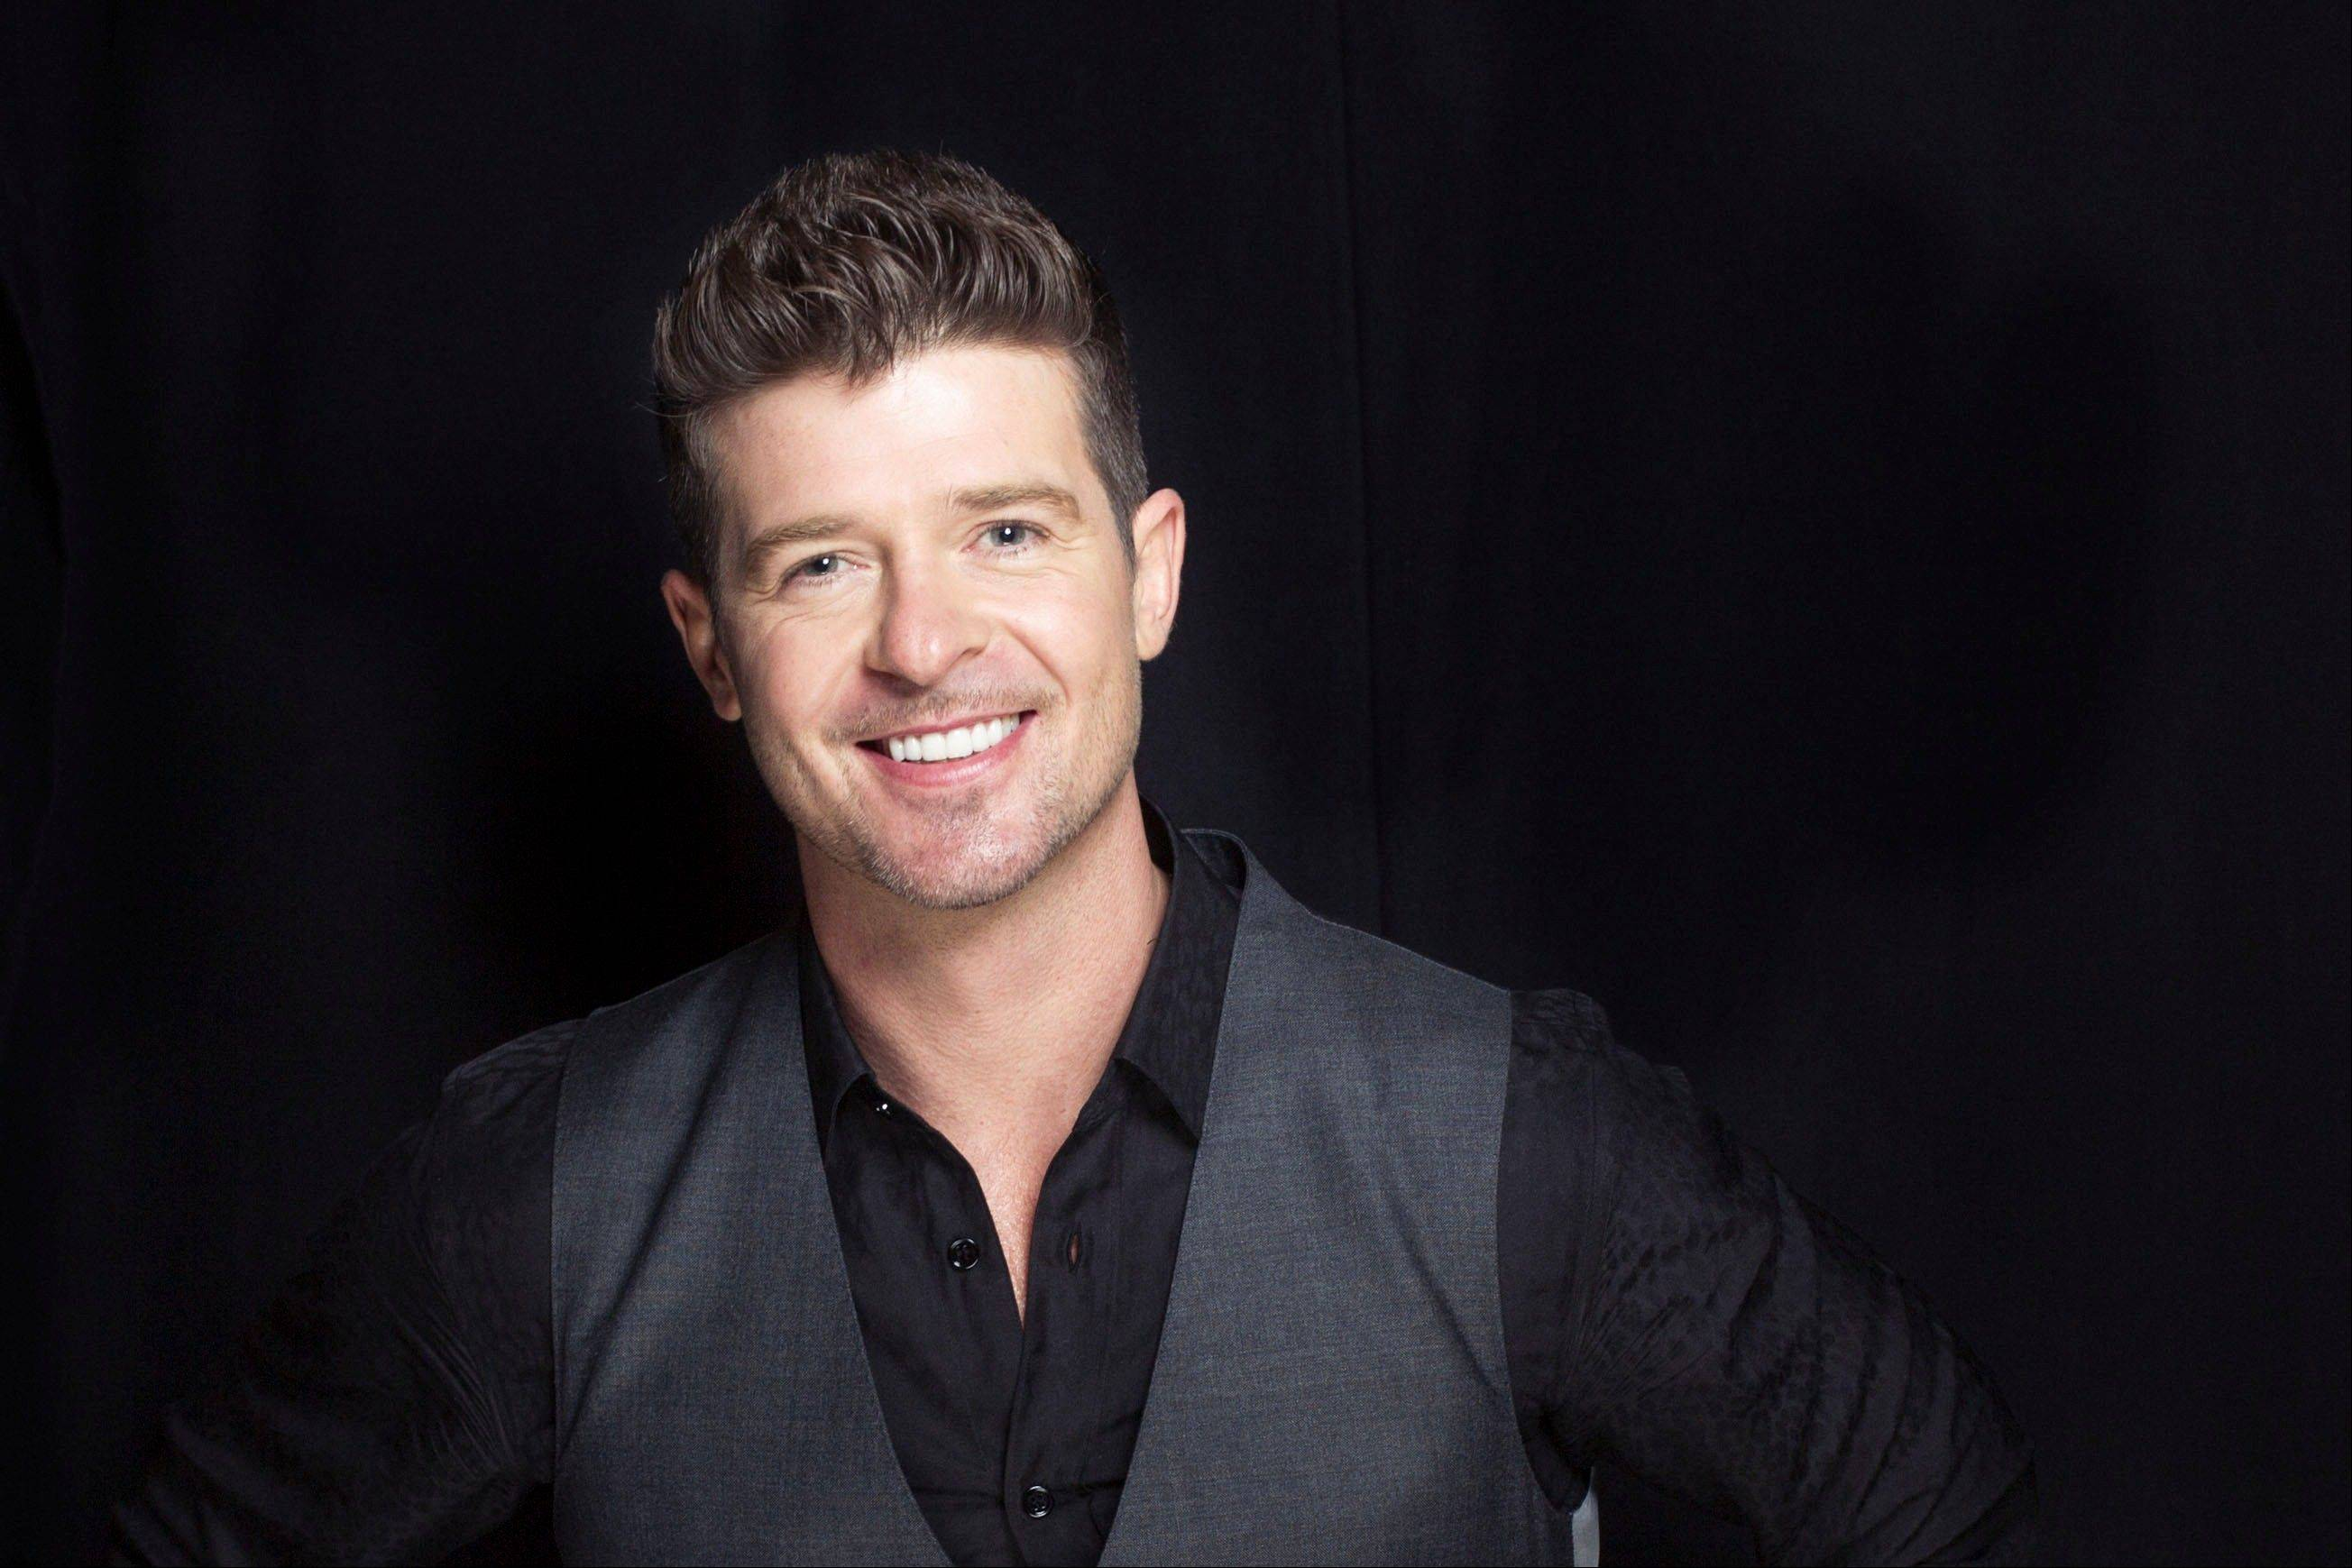 R&B singer-songwriter Robin Thicke